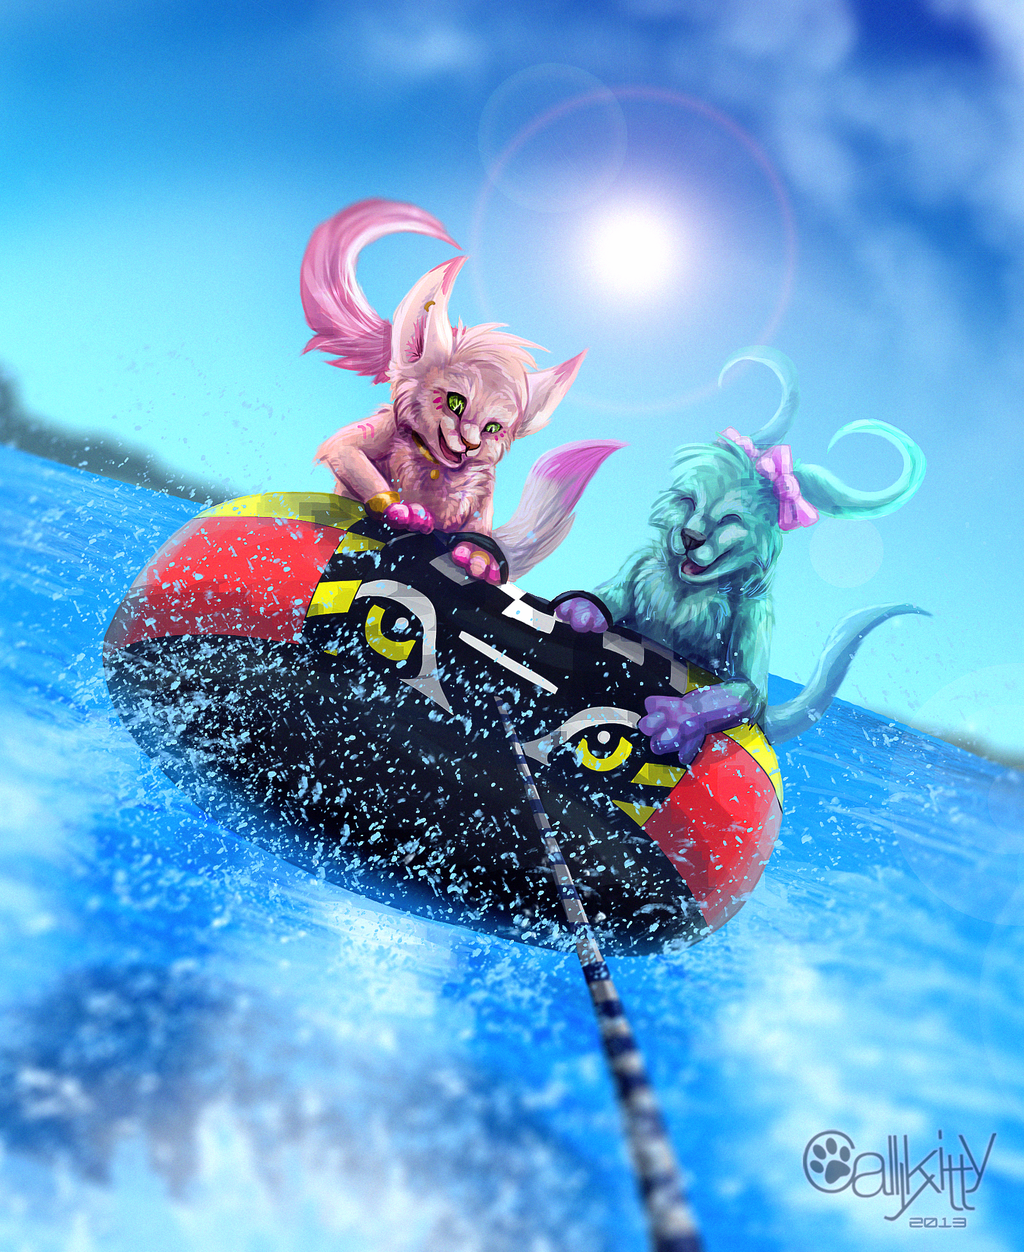 Most recent image: Tubing